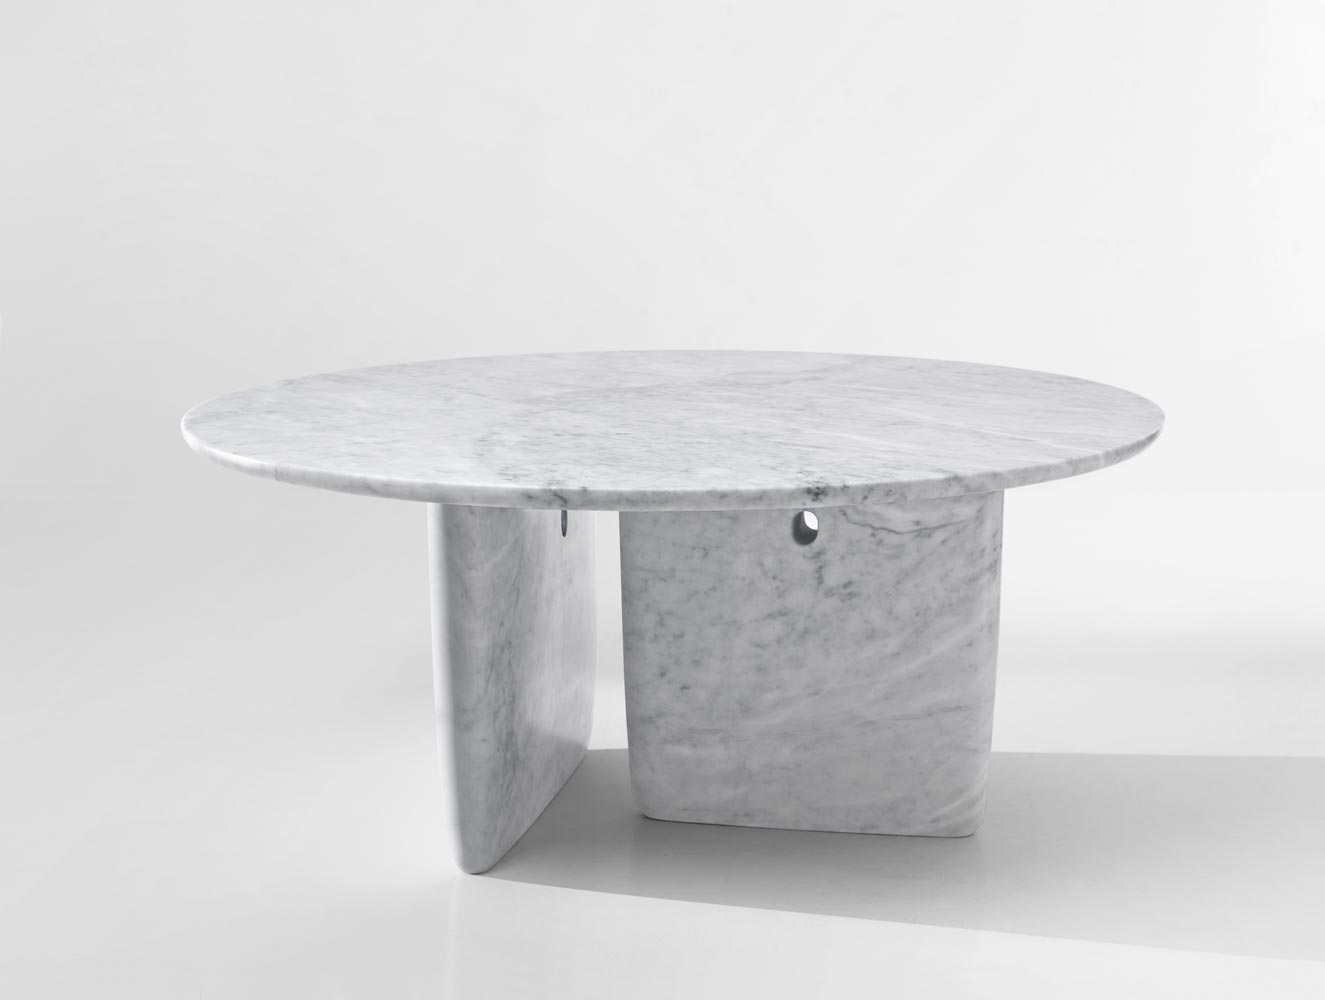 B b italia tobi ishi table buy from campbell watson uk for Objetos hechos con marmol